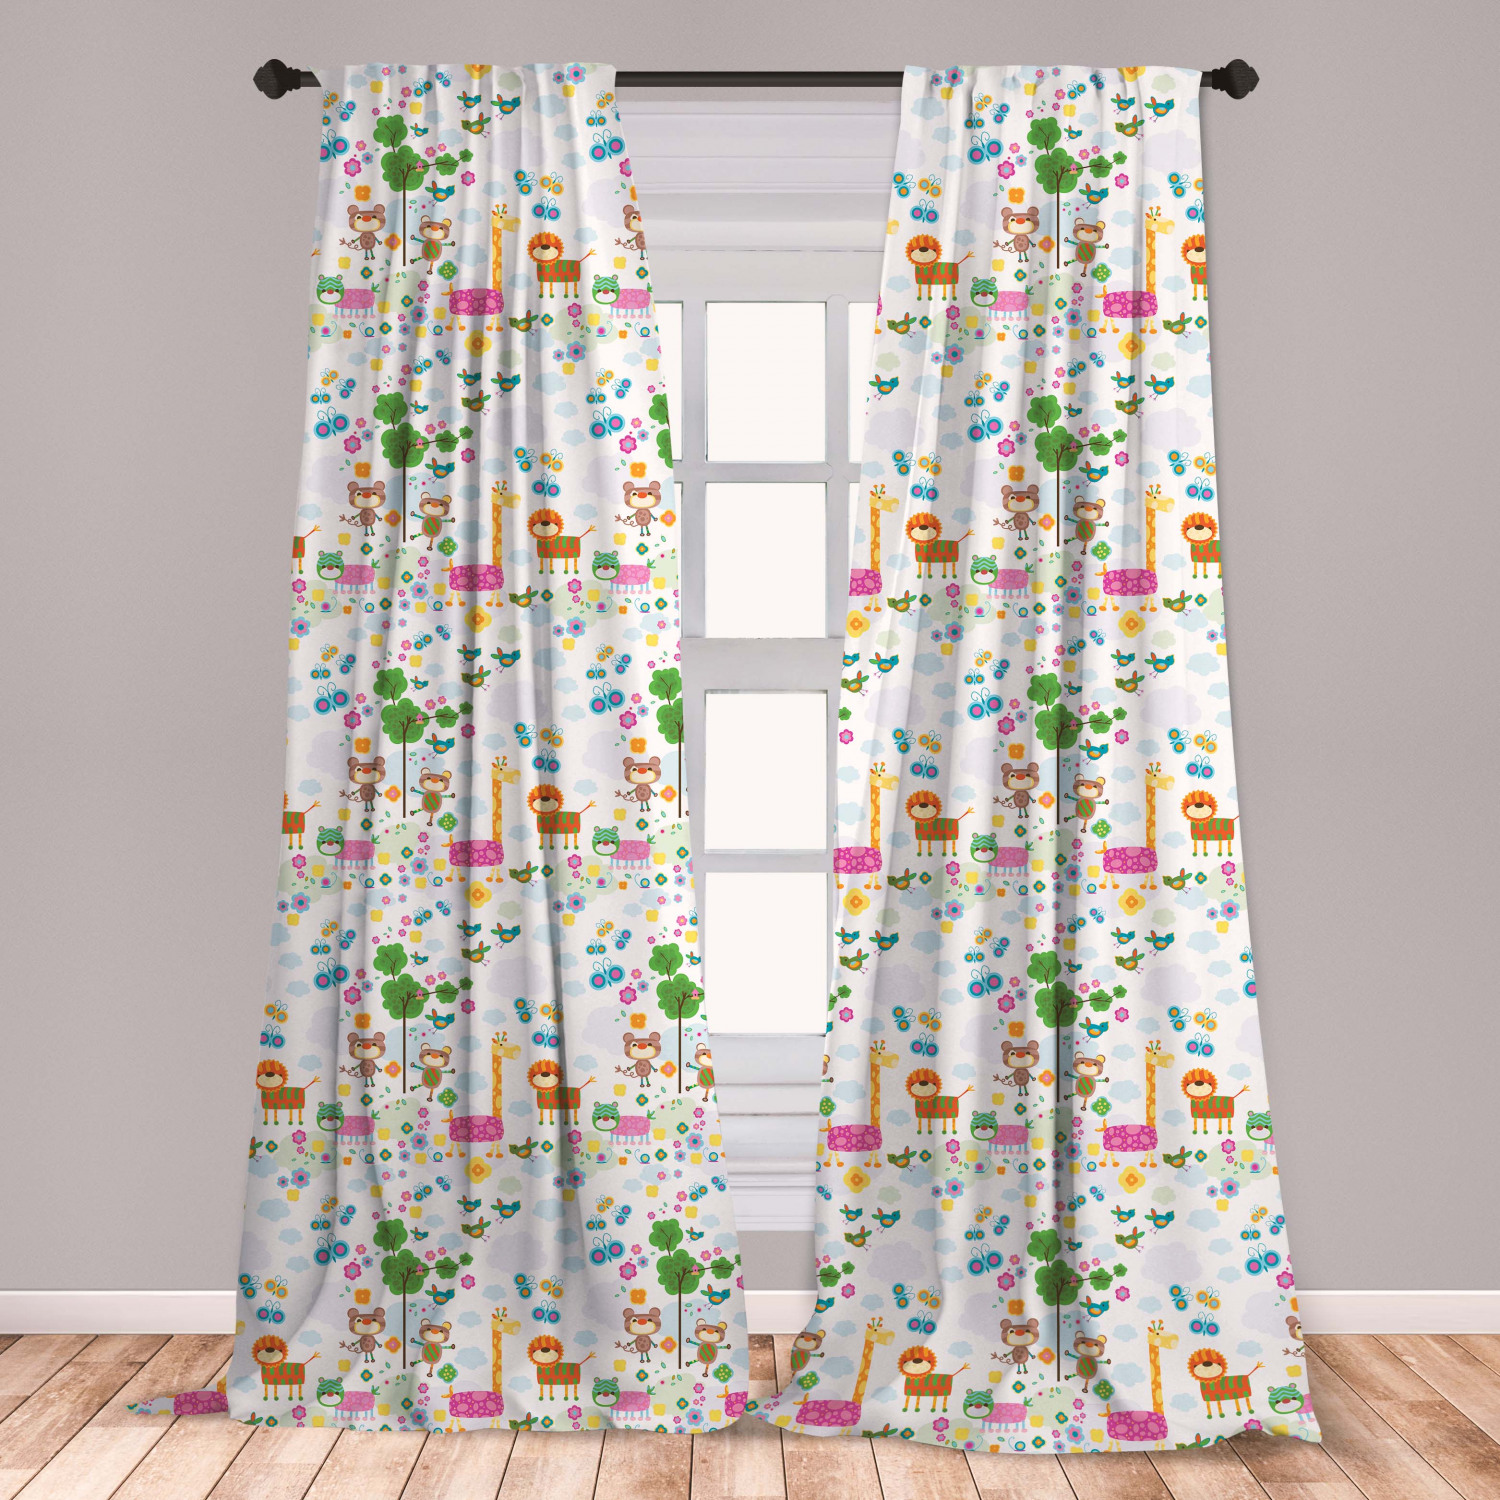 Nursery Curtains 2 Panels Set Floral Background With Funny And Animals Giraffe Lion Monkeys And Butterflies Window Drapes For Living Room Bedroom Multicolor By Ambesonne Walmart Com Walmart Com